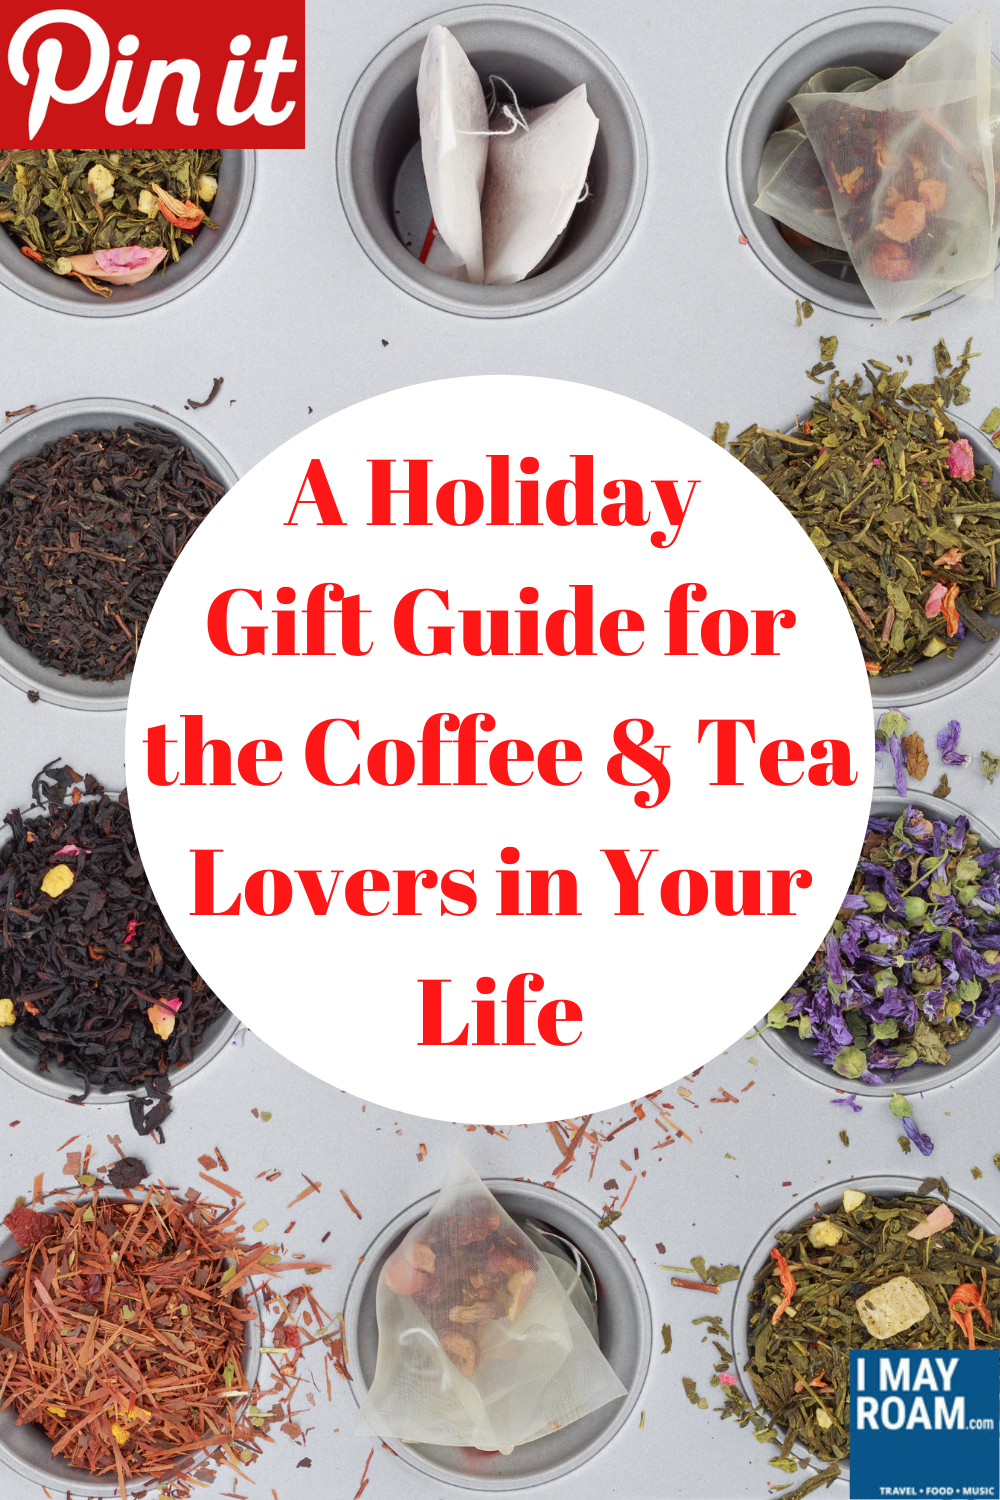 Pinterest A Holiday Gift Guide for the Coffee & Tea Lover in Your Life